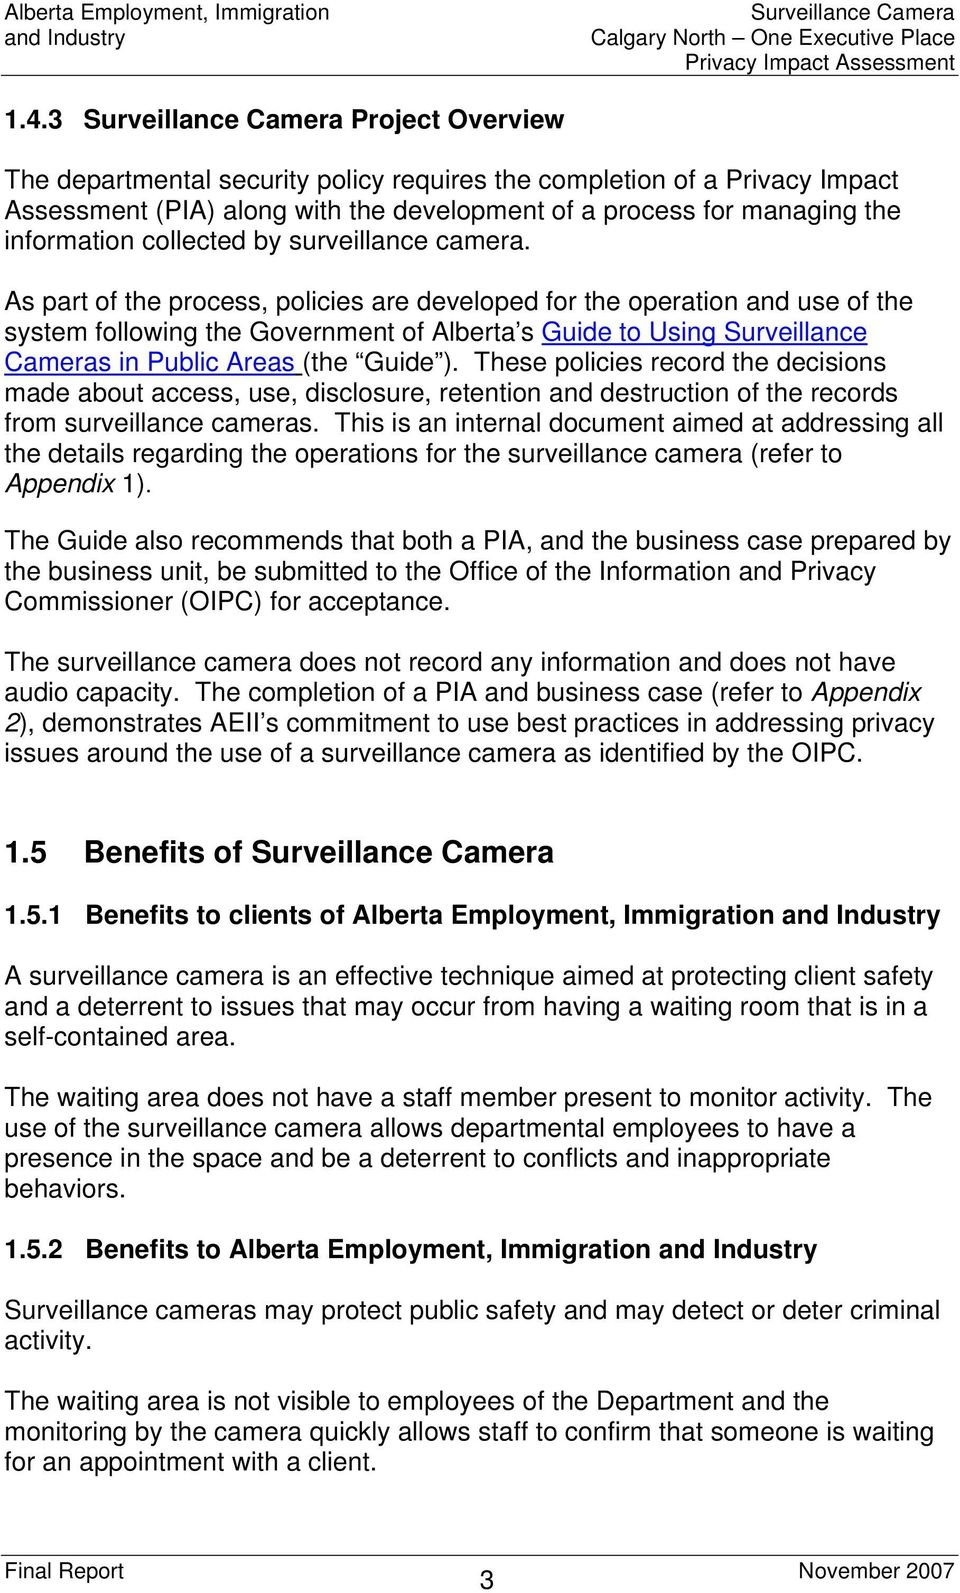 As part of the process, policies are developed for the operation and use of the system following the Government of Alberta s Guide to Using Surveillance Cameras in Public Areas (the Guide ).